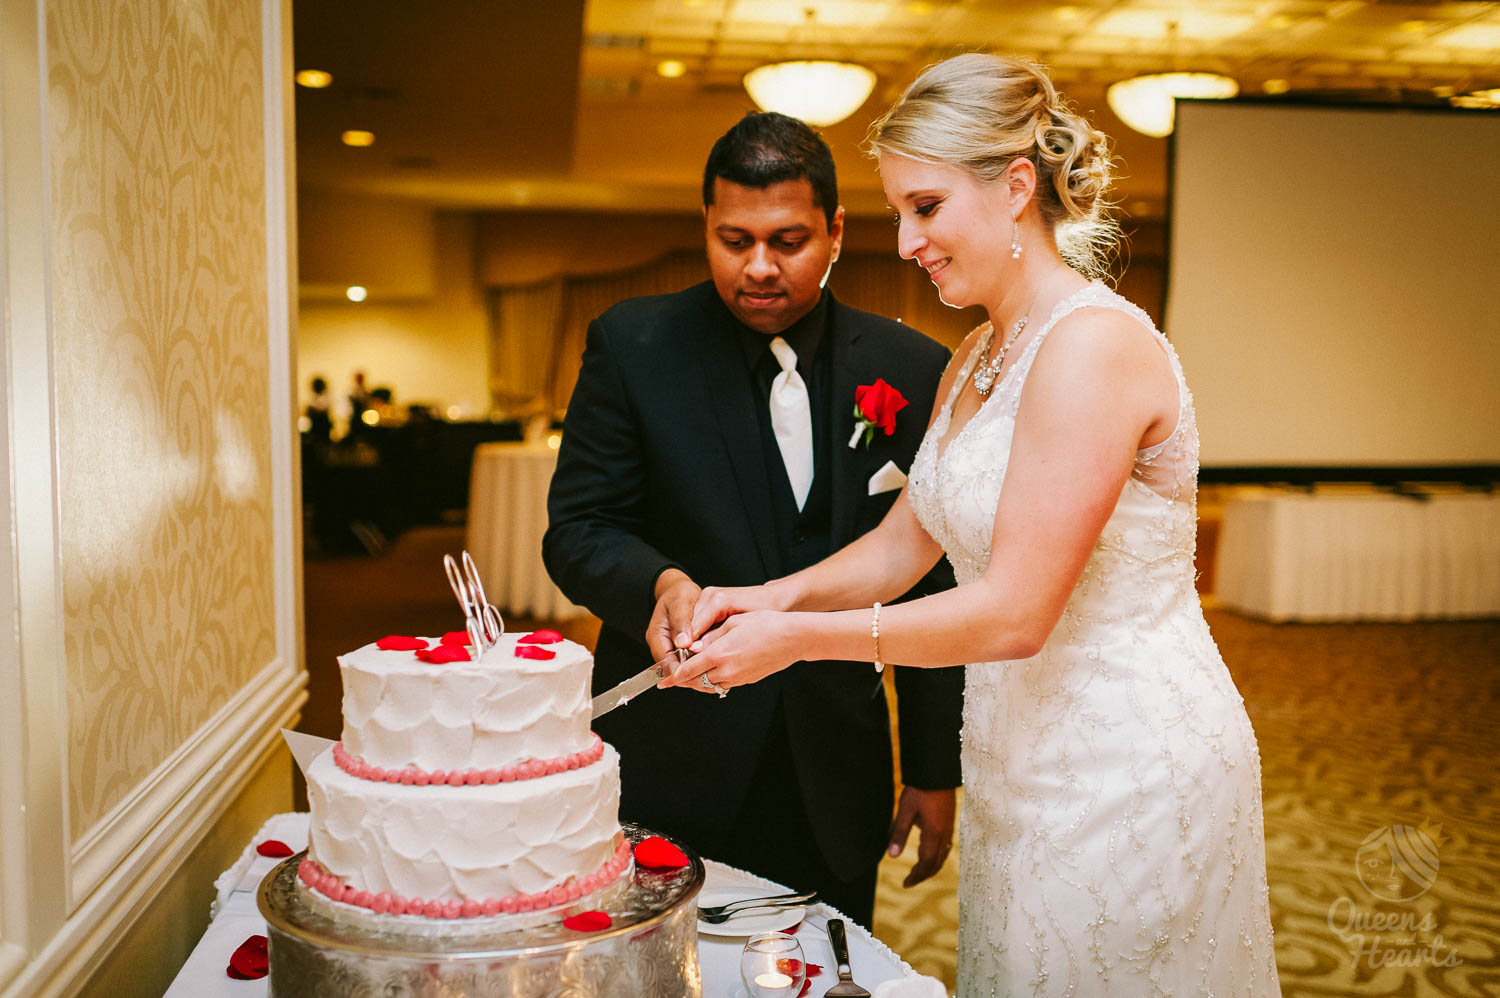 Concourse_hotel_High_Point_church_wedding_photography_Sally_Sunil_by_Queens_Hearts_Photography-0358